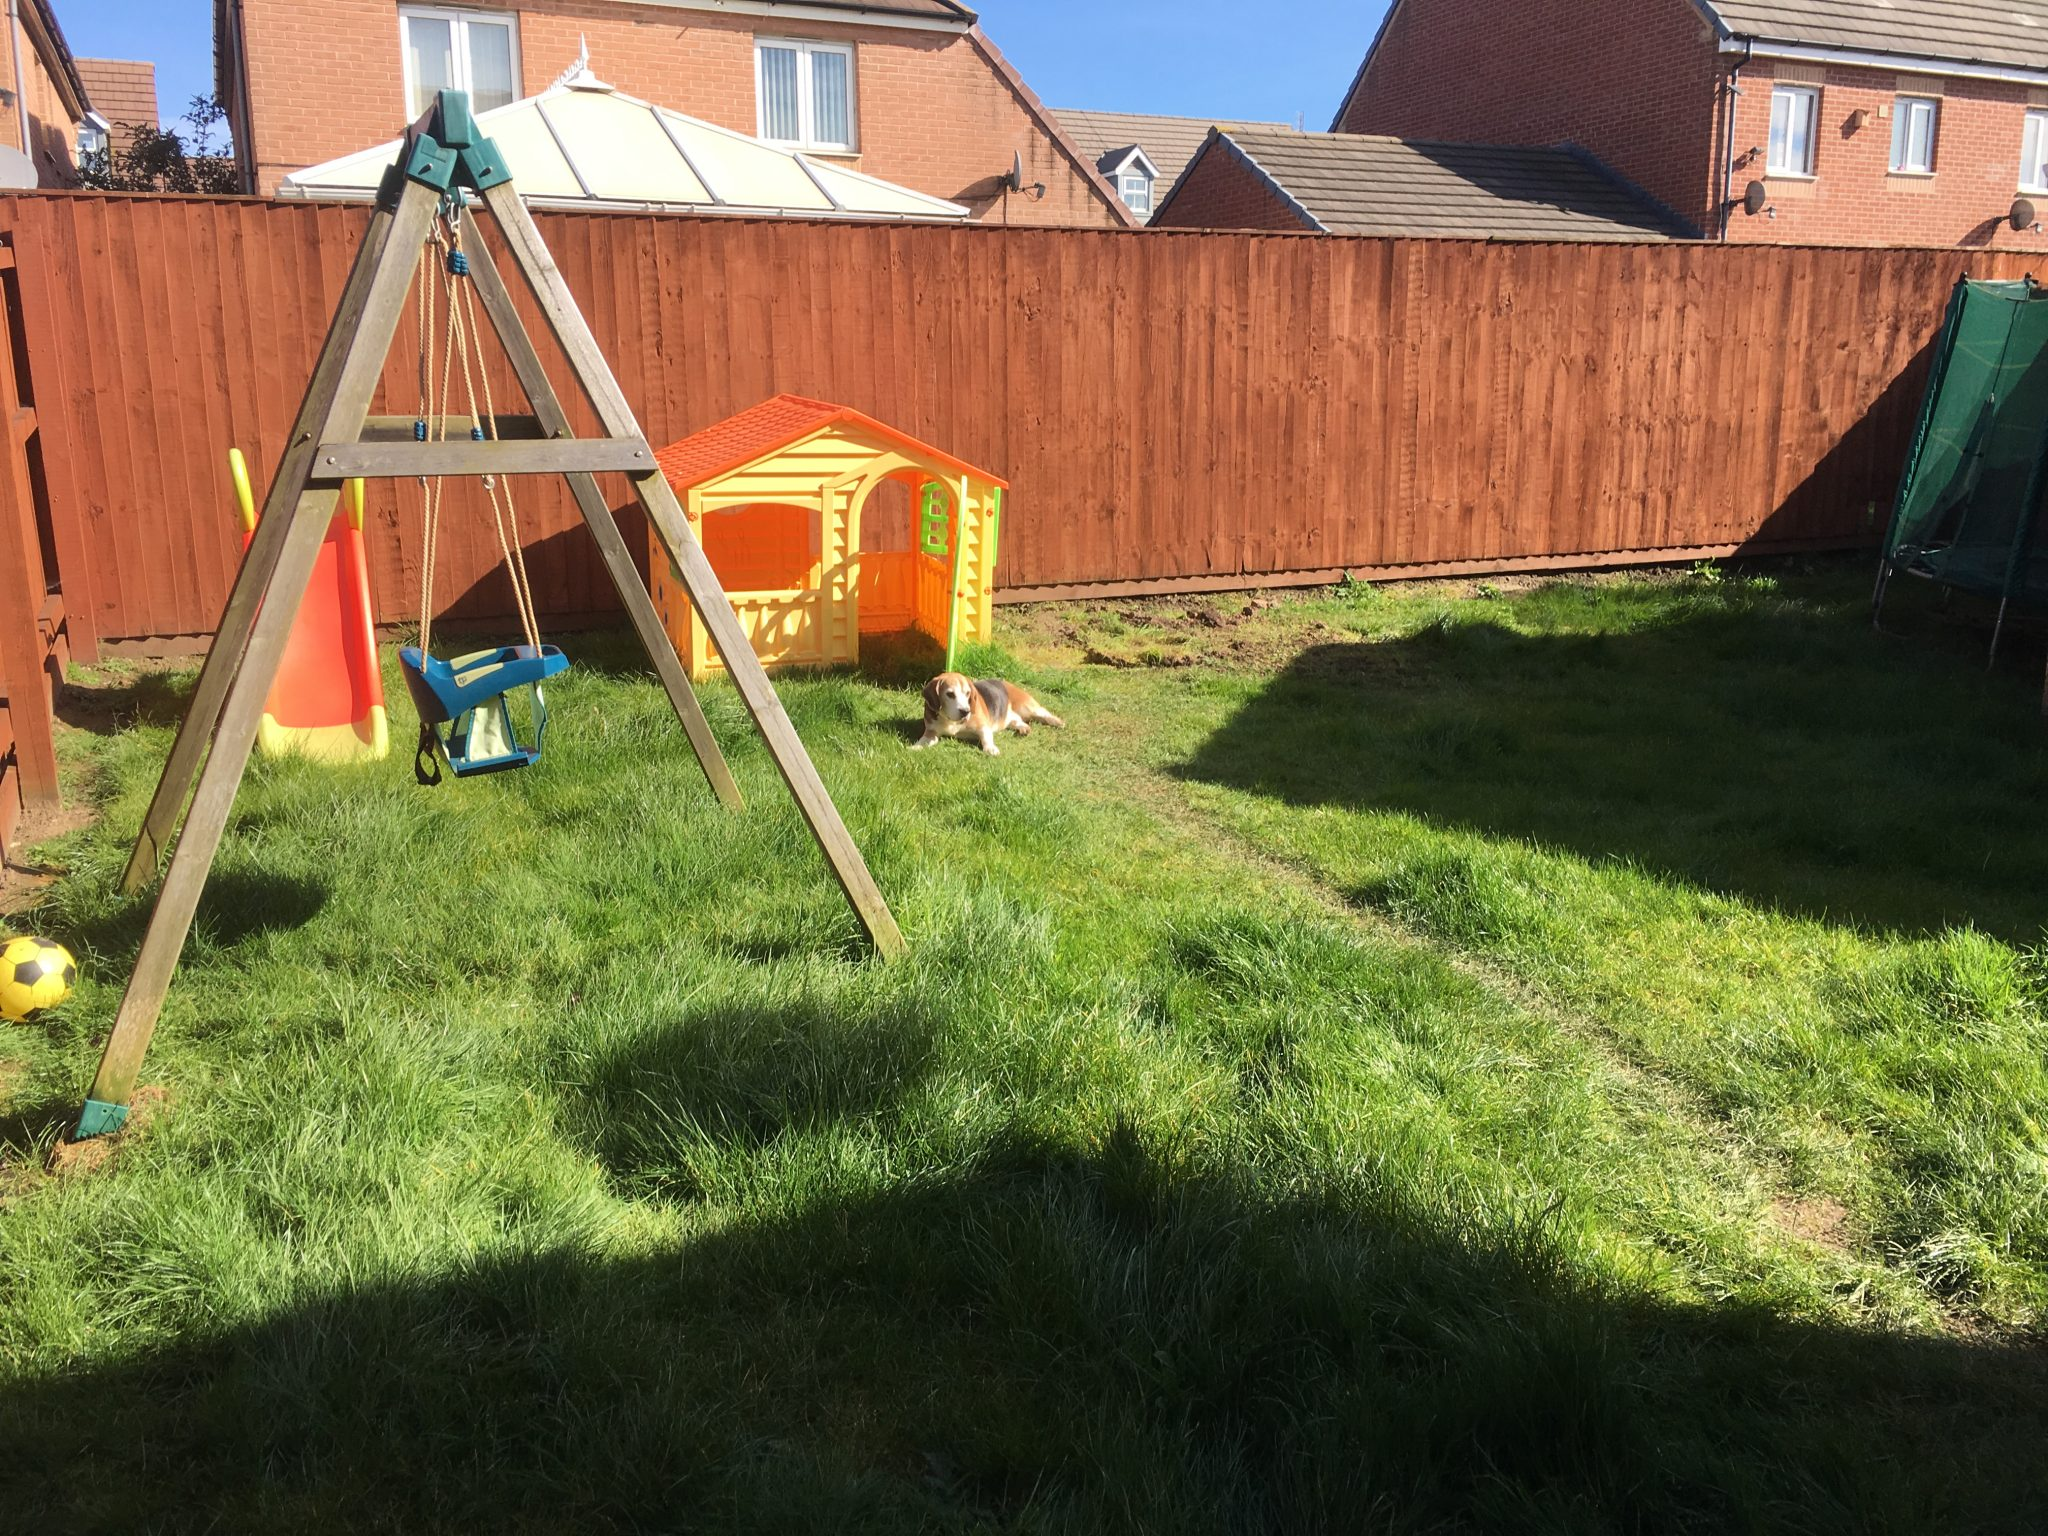 Old lawn with childs play area